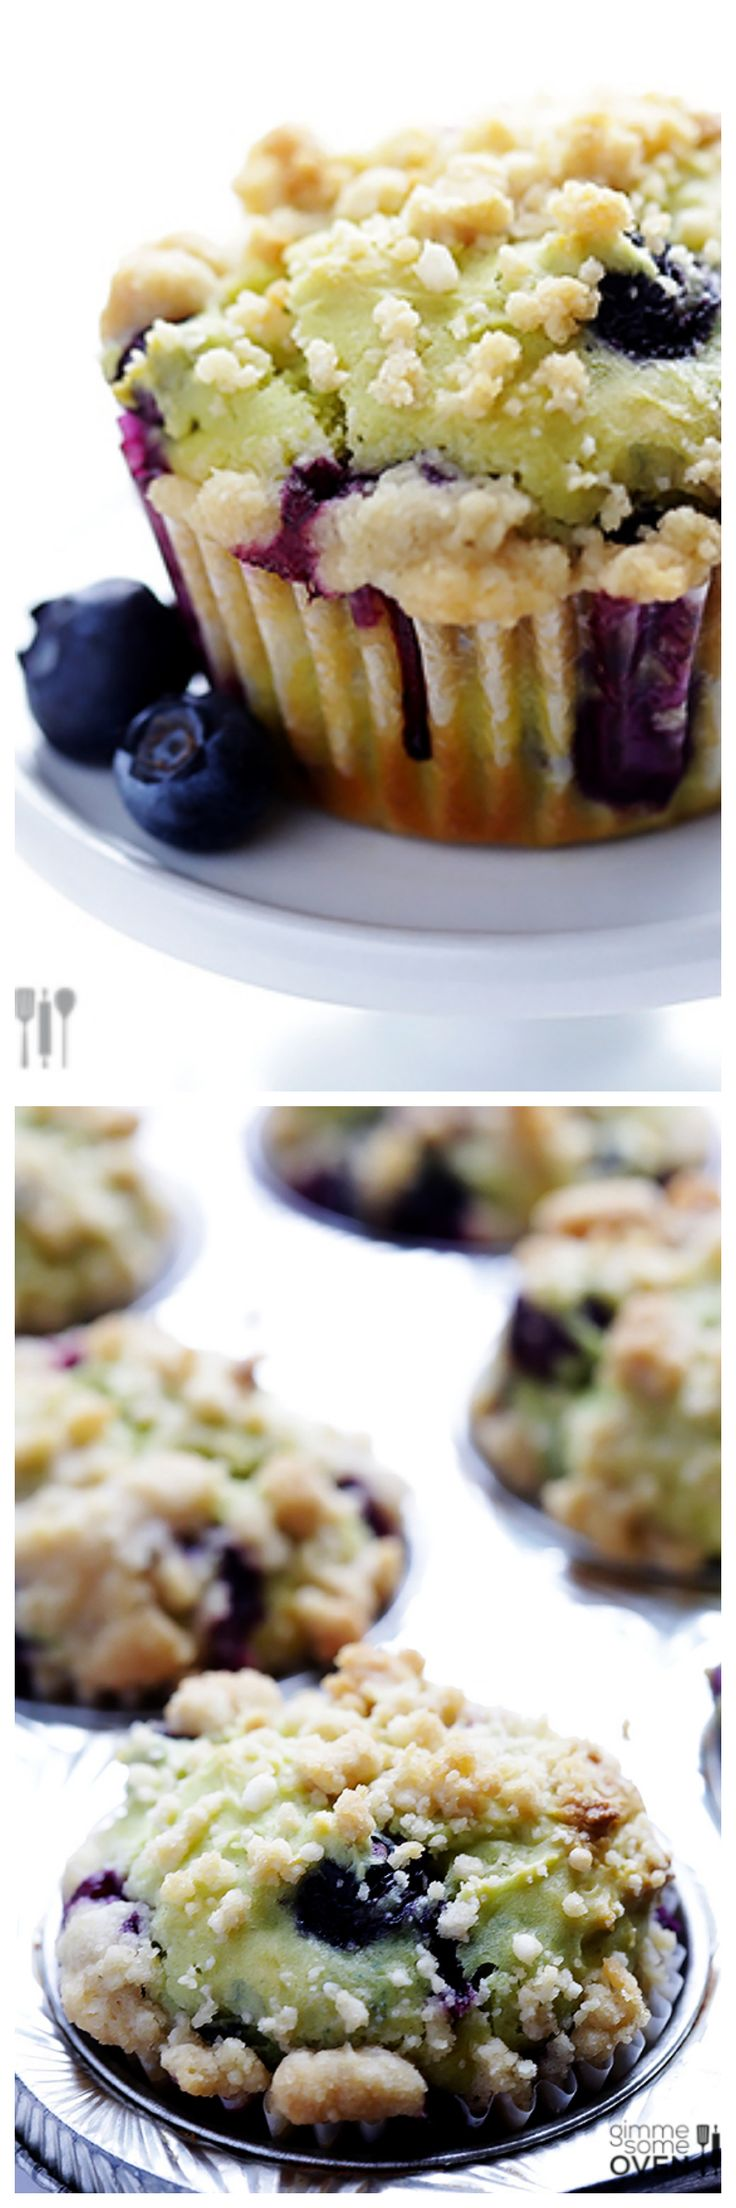 Blueberry Avocado Muffins -- simple to make with avocado used in place of oil | gimmesomeoven.com #breakfast